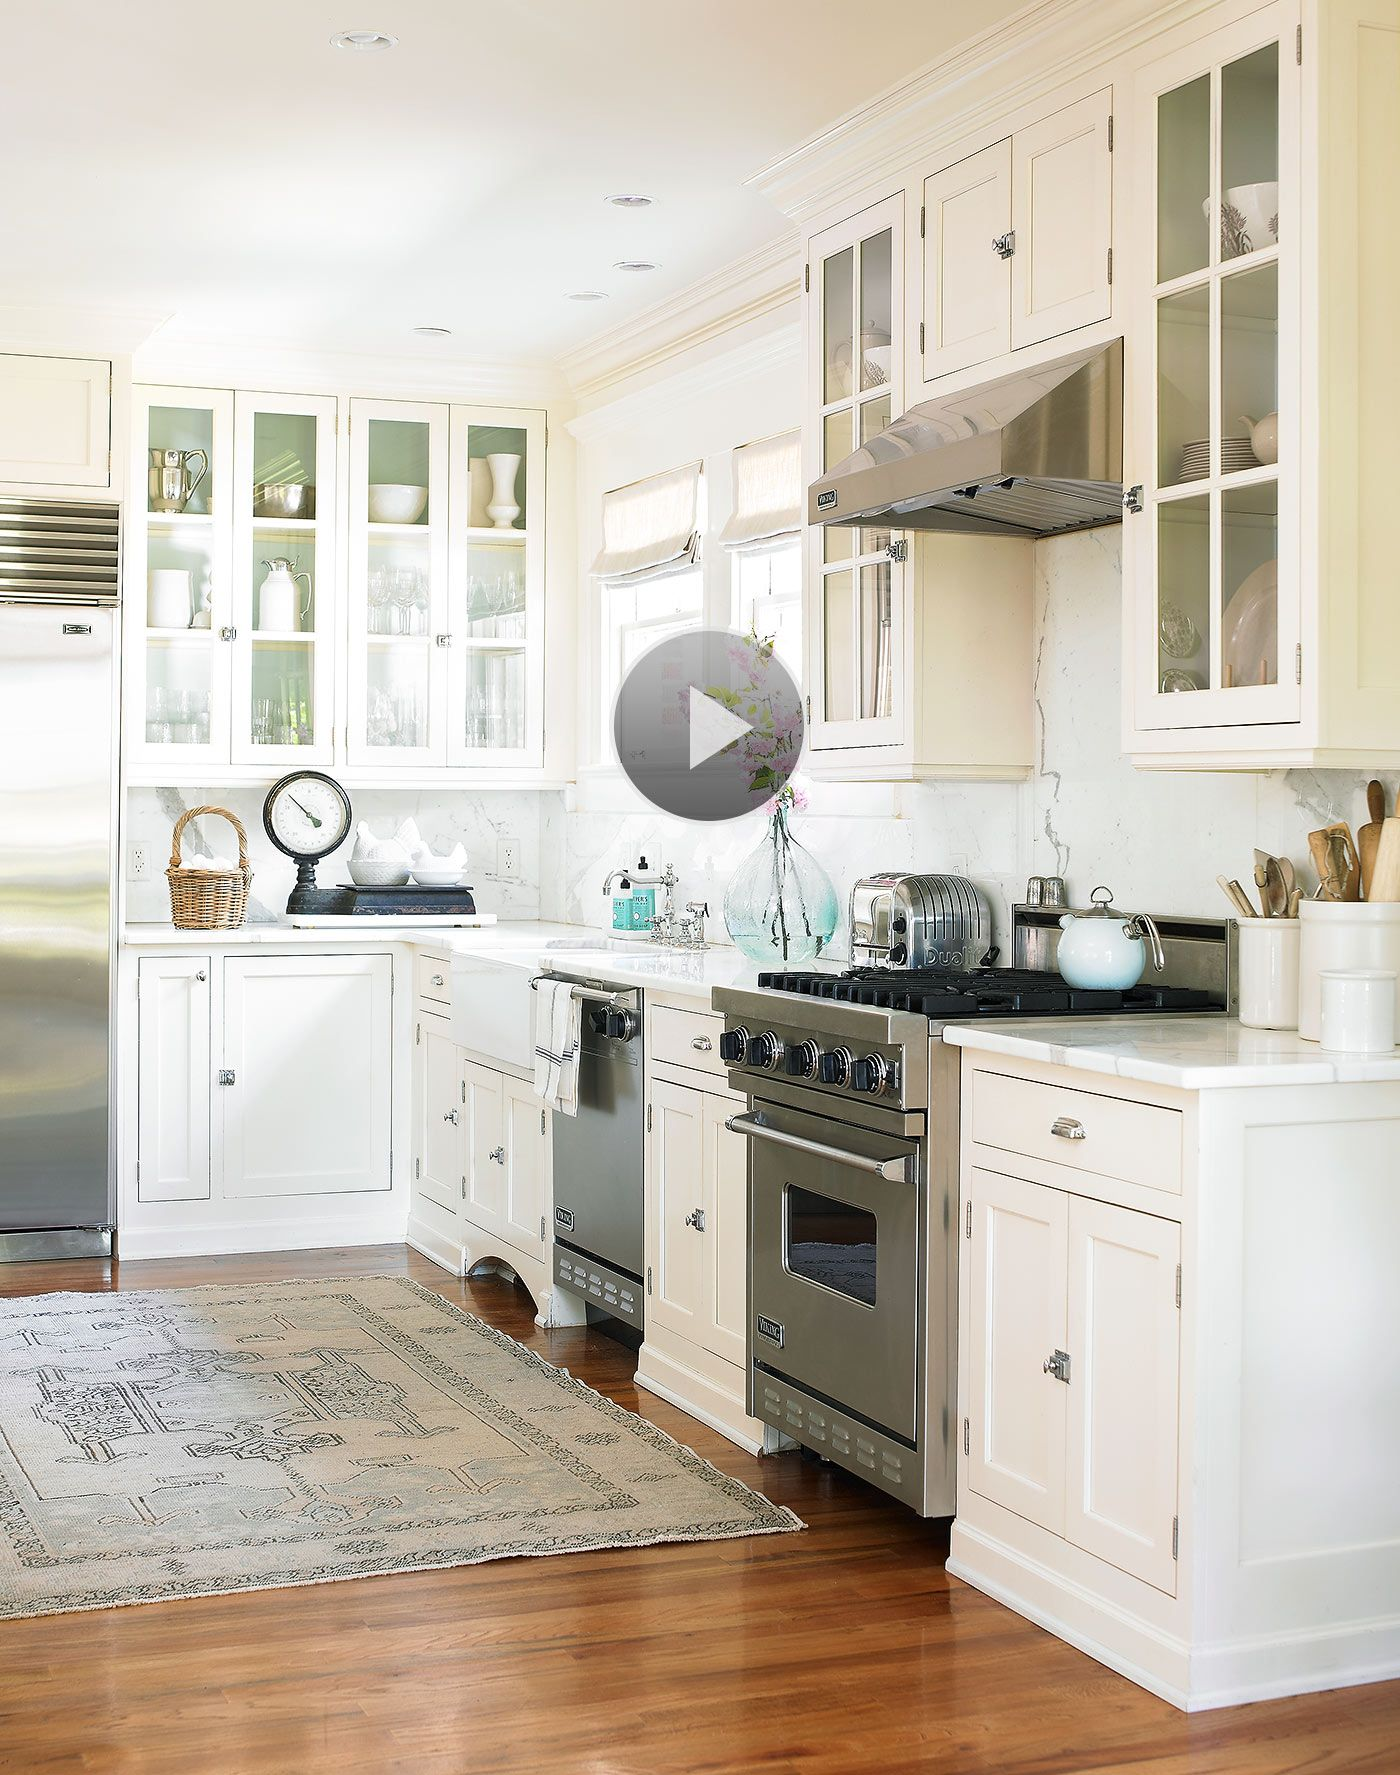 can we paint kitchen cabinets white paint colors for kitchen cabinets home how to 13210